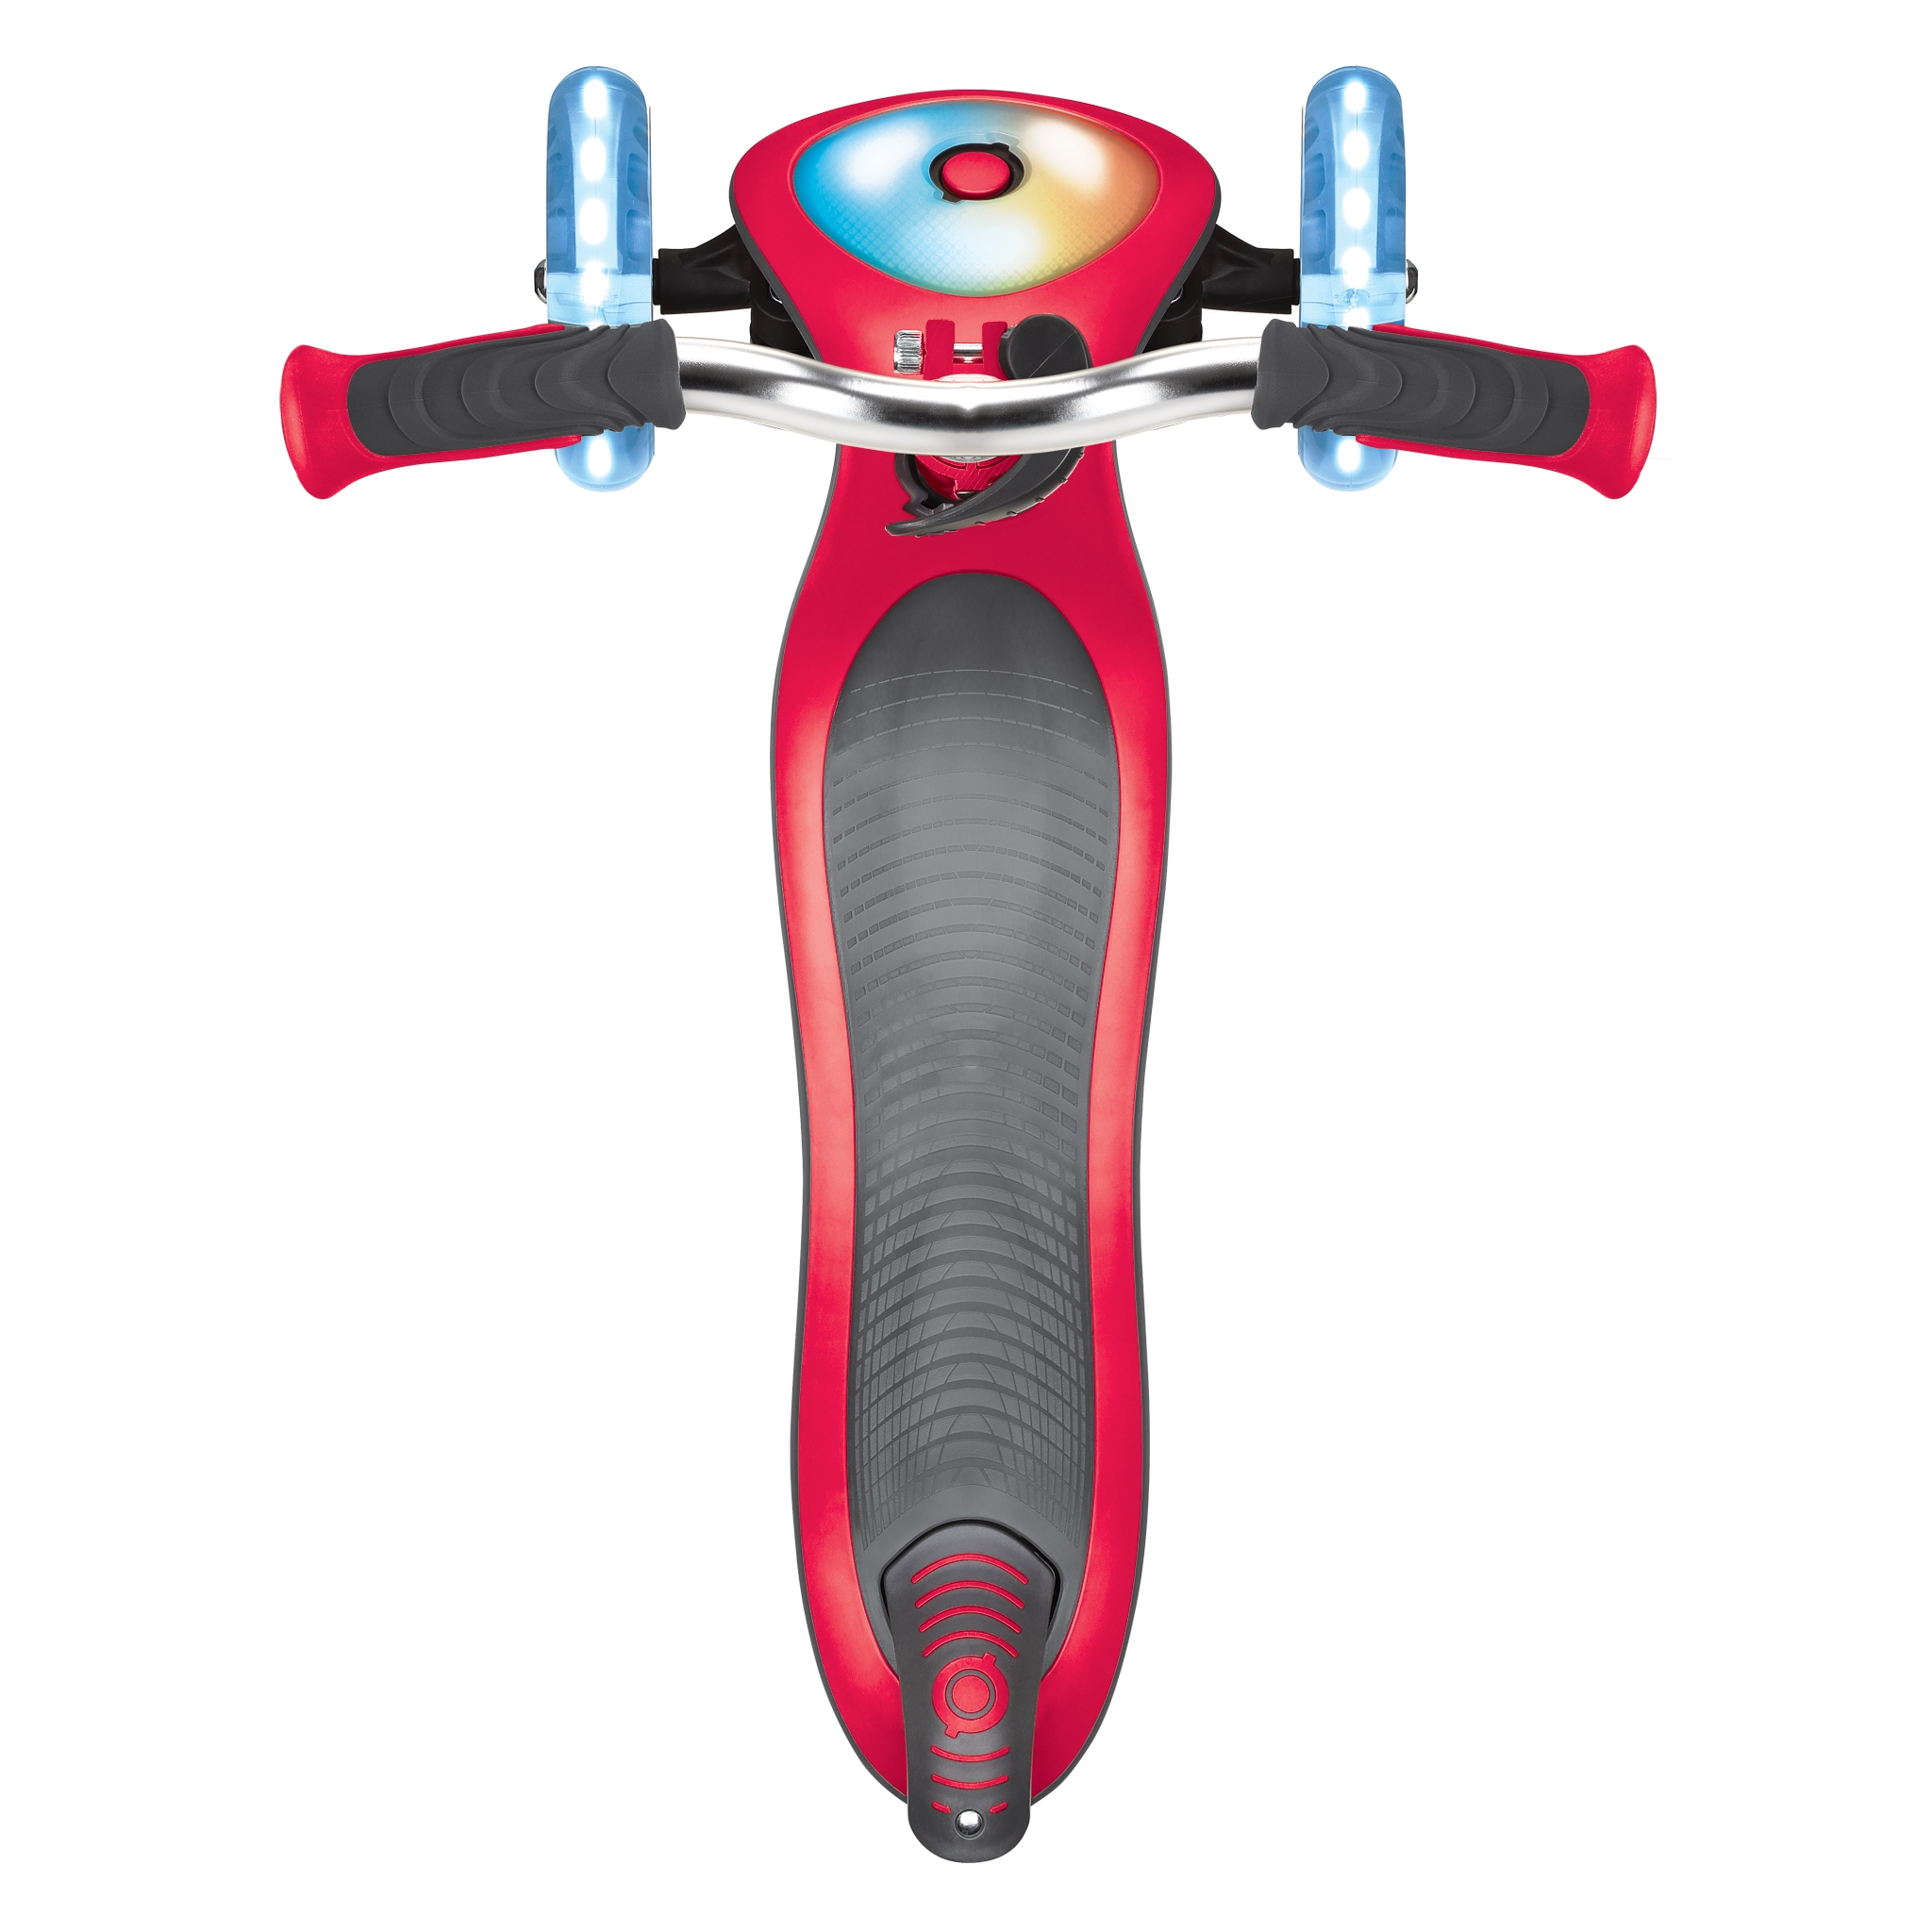 Globber-ELITE-PRIME-best-3-wheel-foldable-scooter-for-kids-with-light-up-scooter-deck-new-red